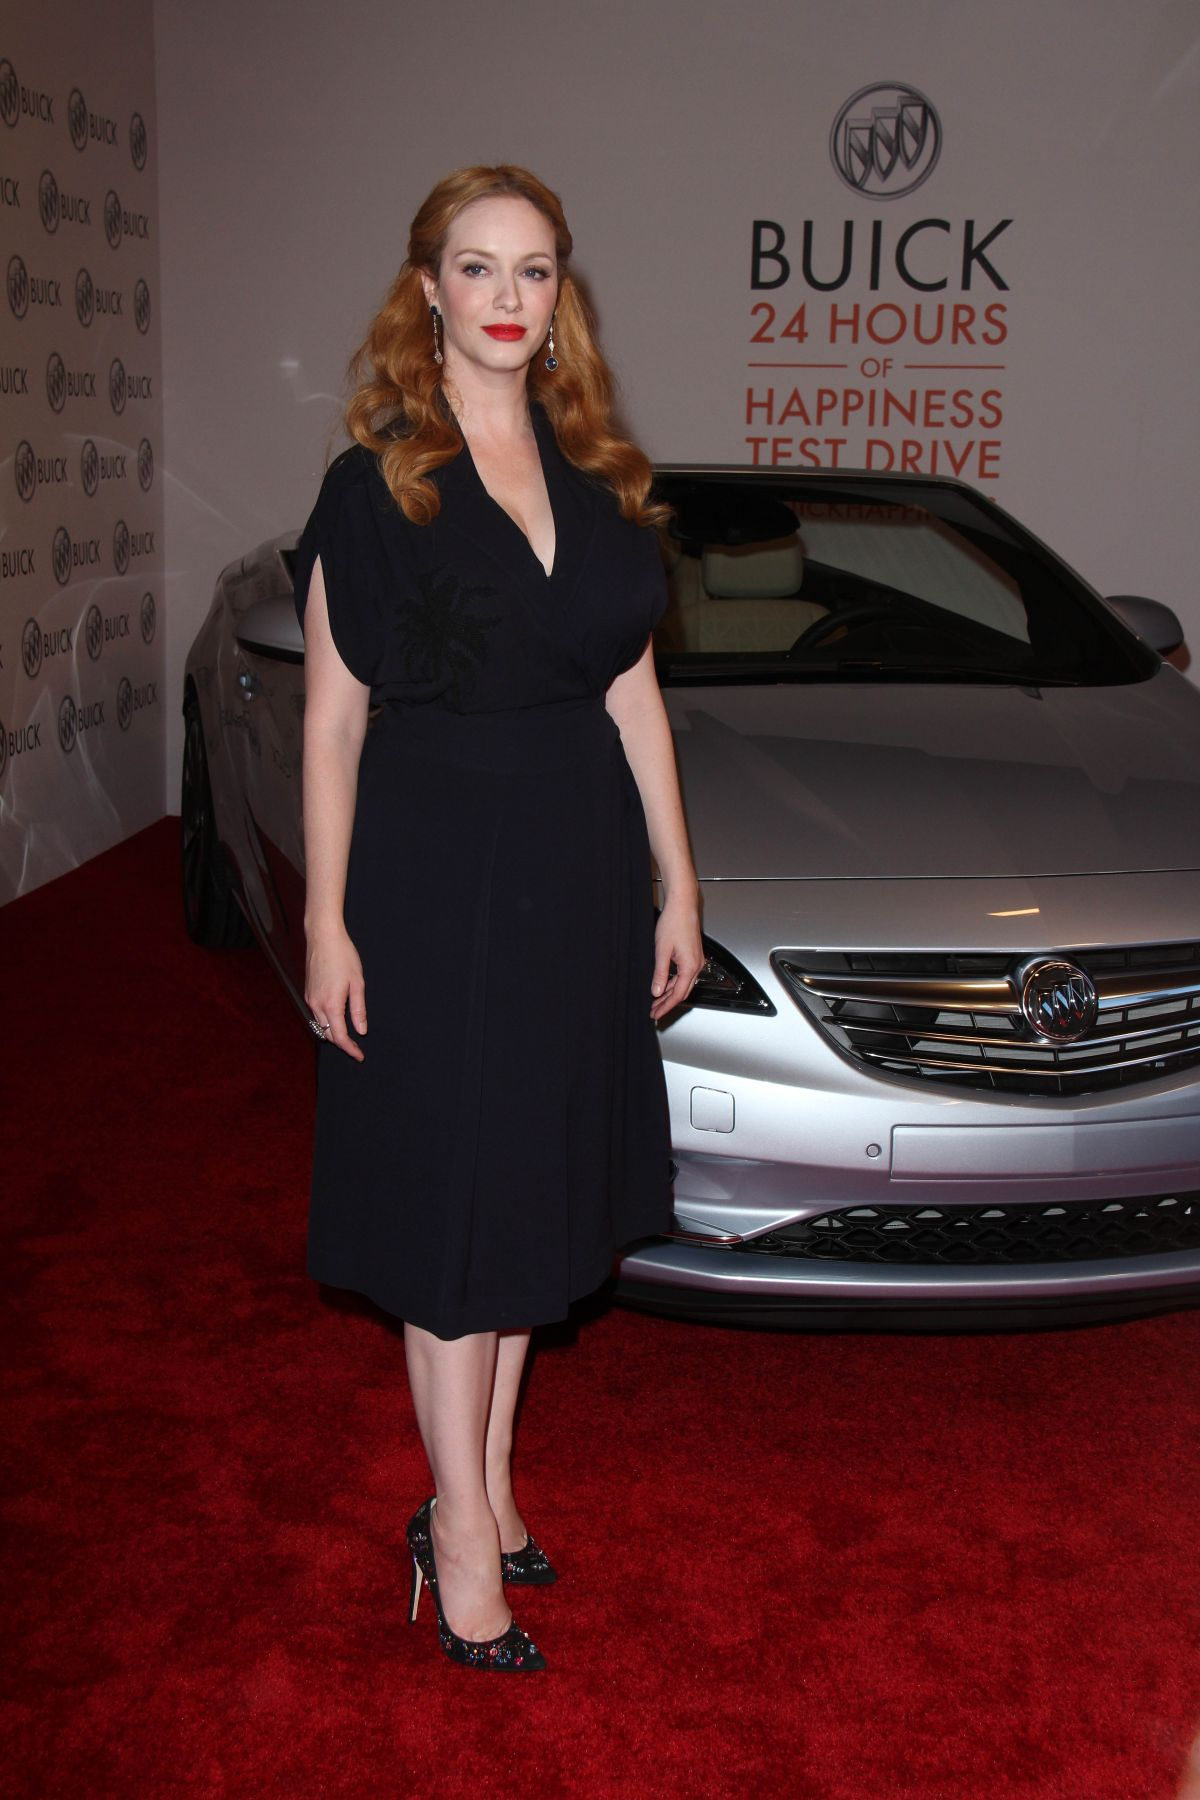 christina-hendricks-at-buick-24-hours-of-happiness-test-drive-launch-in-los-angeles_18.jpg